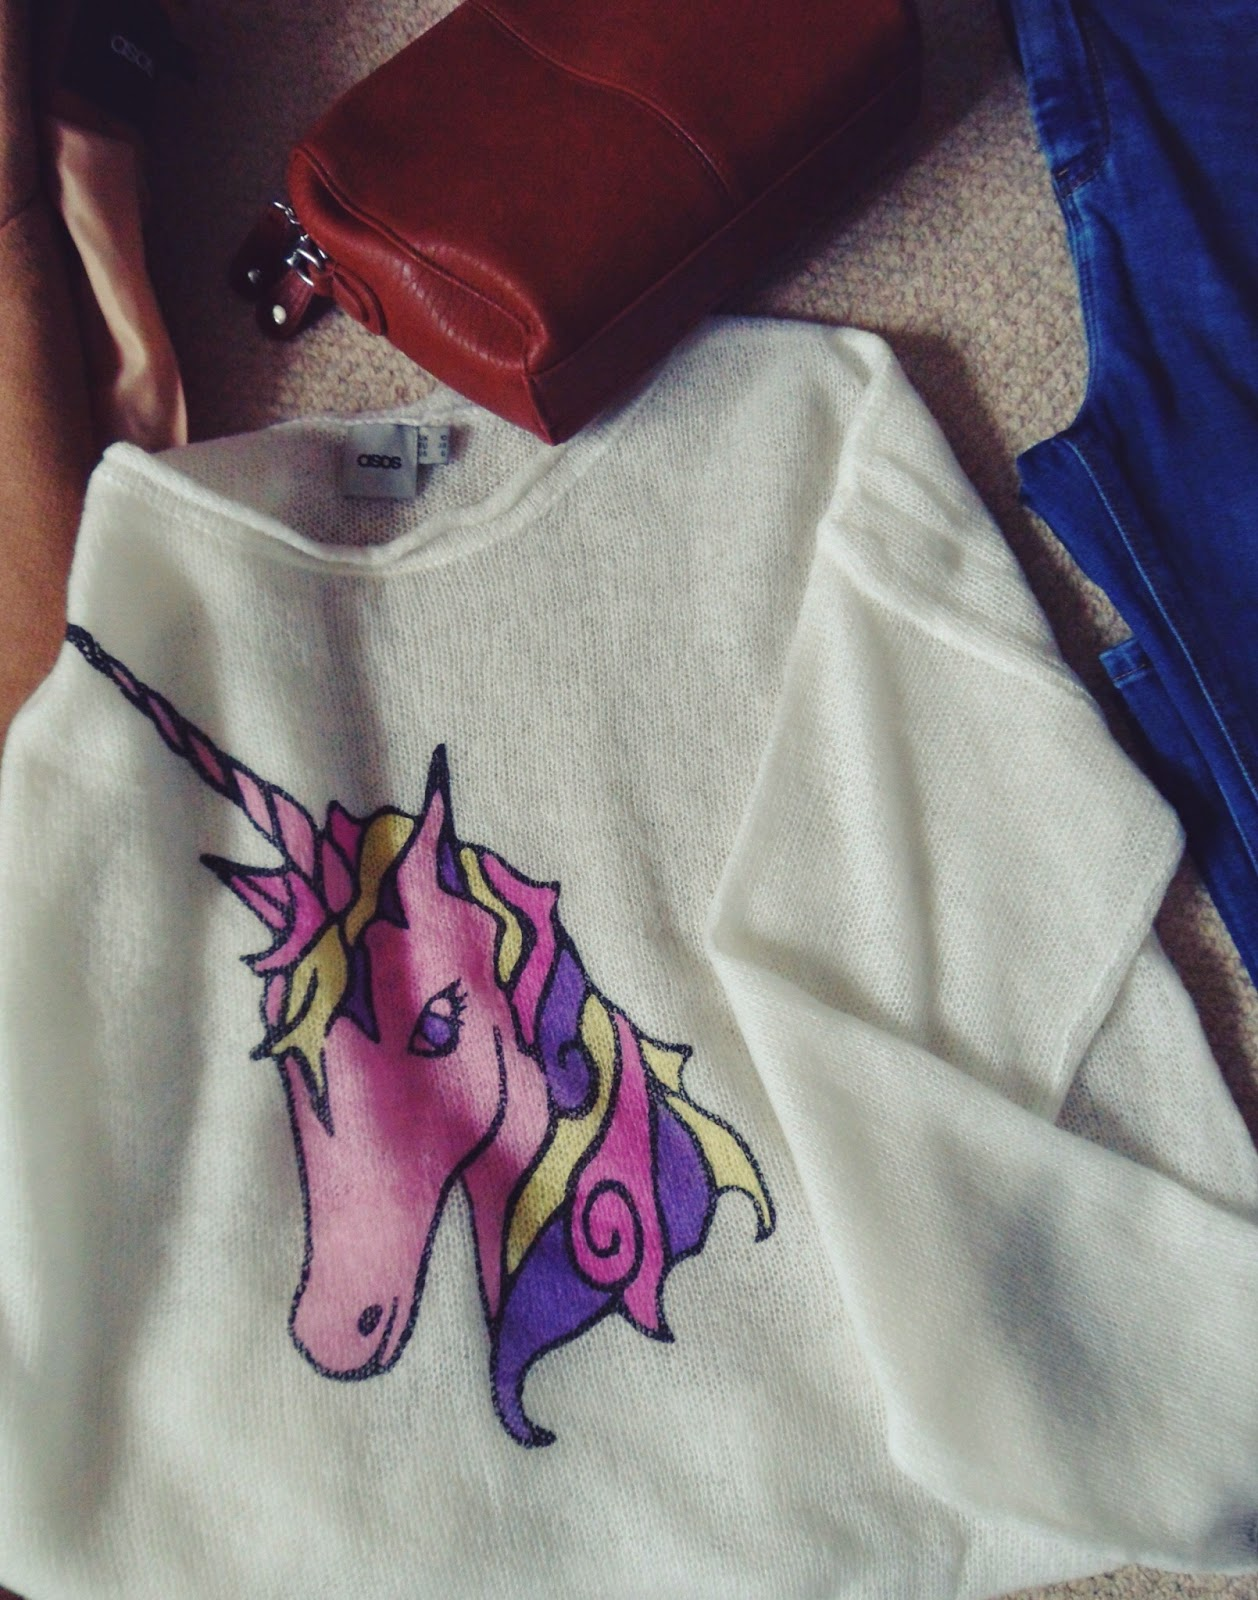 asos, asoshaul, asseenonme, haul, shopping, whatibought, wiw, whatimwearing, unicornjumper, camelcoat, boyfriendtee, asossale, fbloggers, fblogger, fashion, fashionhaul, fashionblogger, rippedjeans, instagram